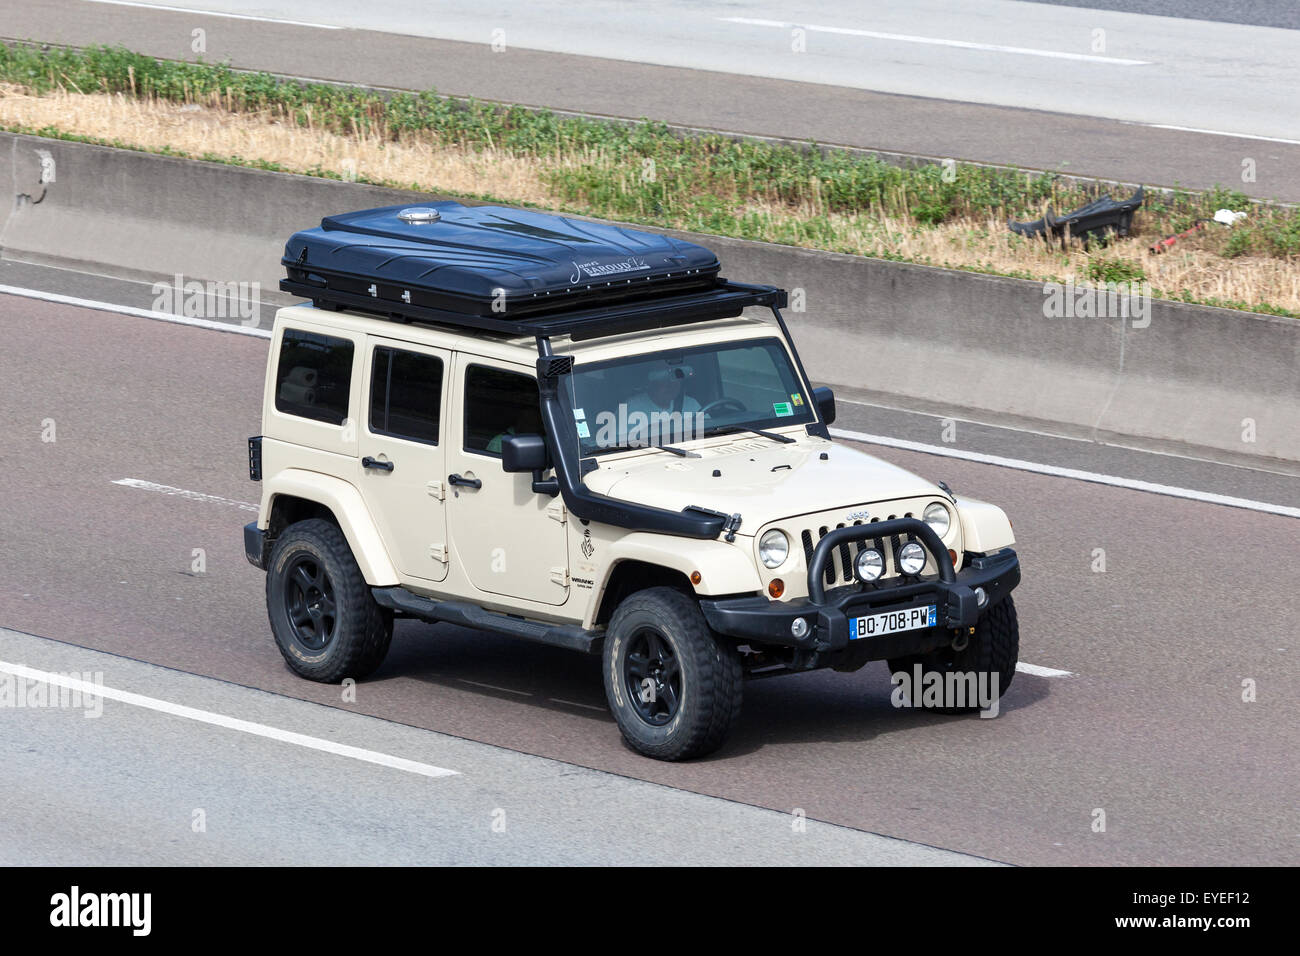 jeep wrangler unlimited mit einer dachbox zelt bewegen schnell auf der autobahn a5 26 juli. Black Bedroom Furniture Sets. Home Design Ideas